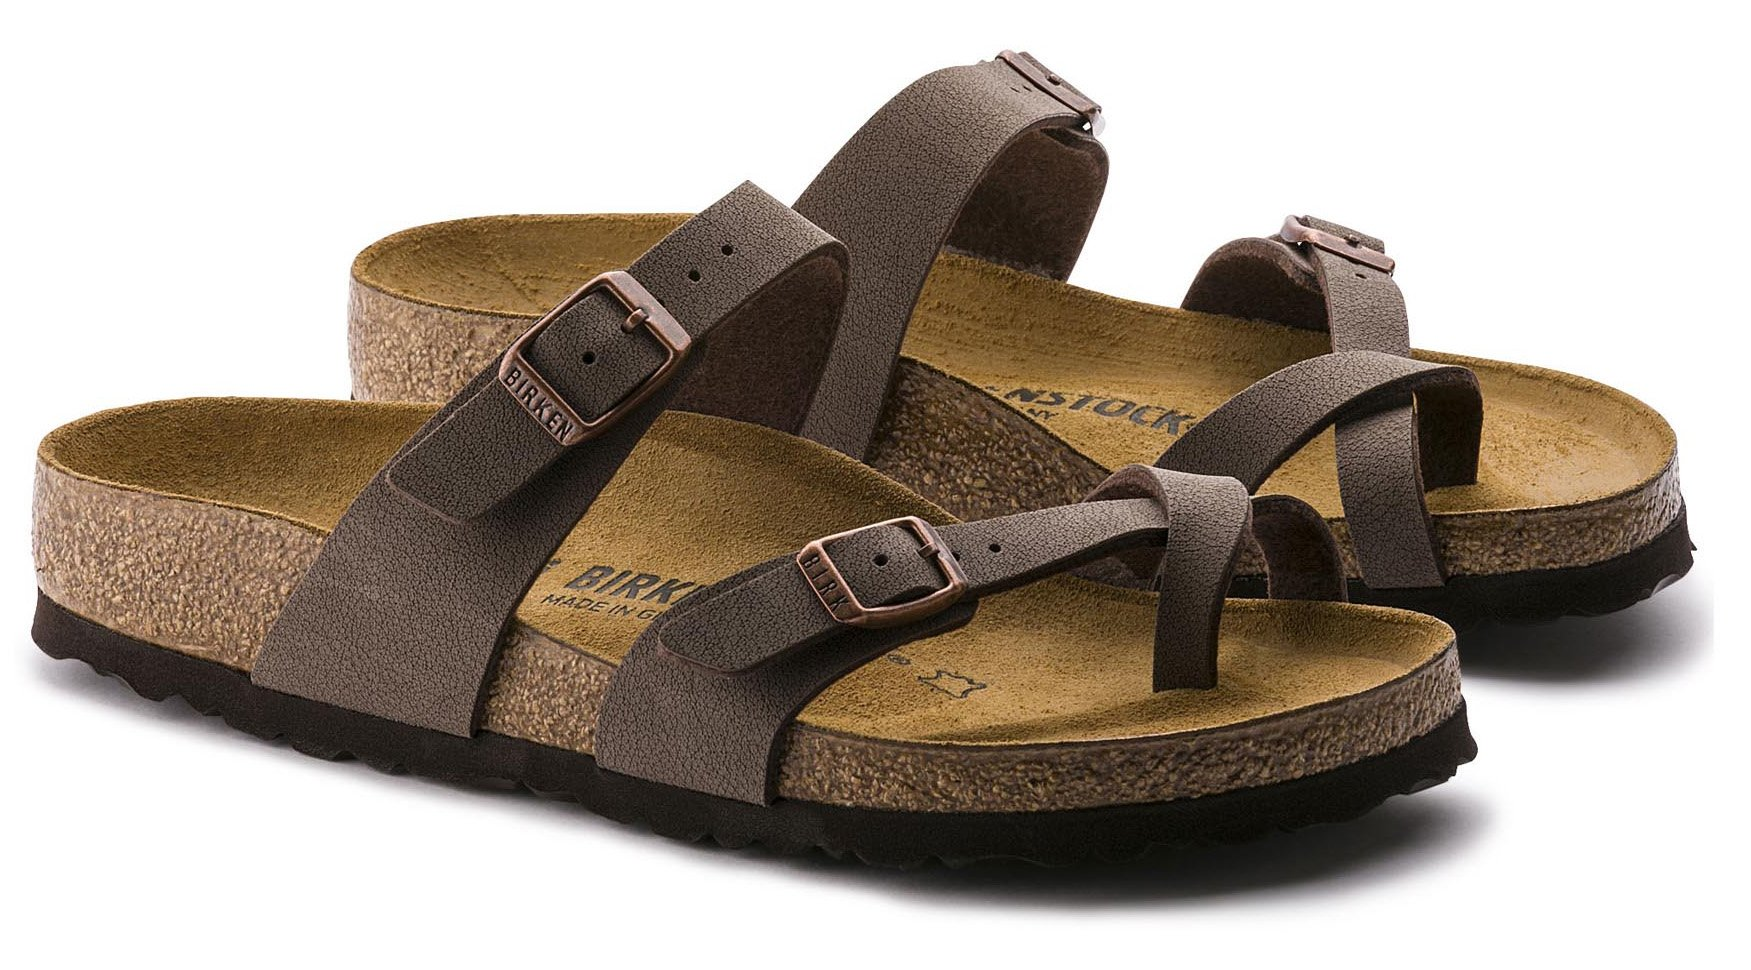 Mayari (Women's) Cork-Footbed Flat Sandals in Mocha Brown [New Style] (39 M EU / 8-8.5 B(M) US Women) by Mayari by Birkenstock